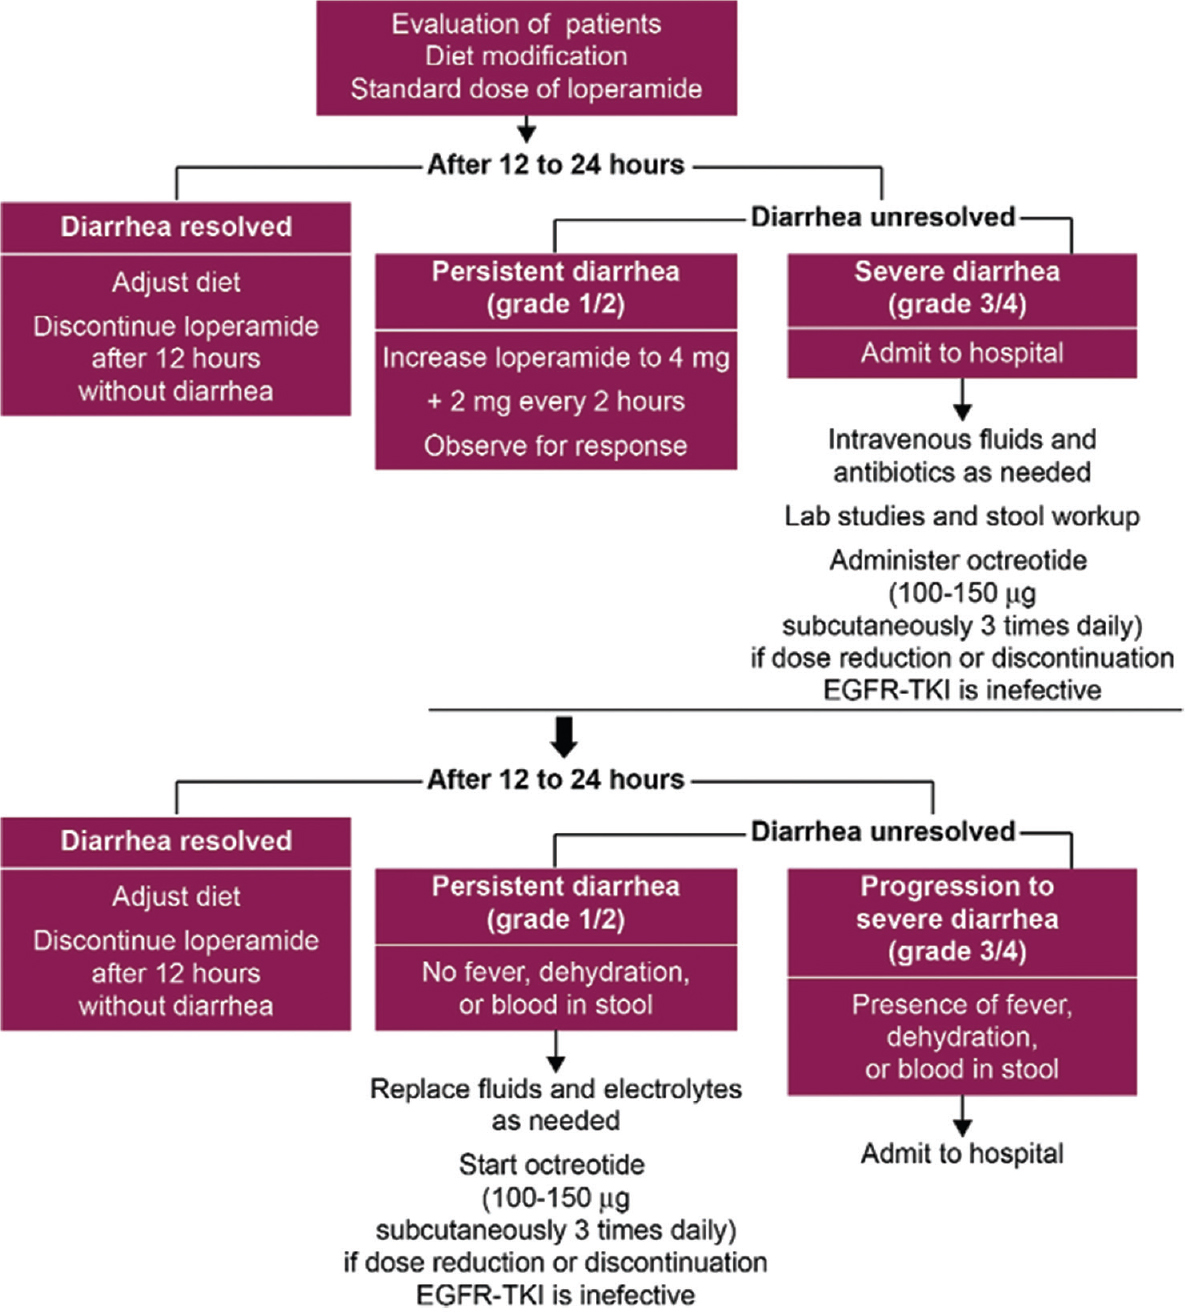 Figure 2: Management of diarrhea in patients taking epidermal growth factor receptor tyrosine kinase inhibitor. (a) Starting dose is 4 mg followed by 2 mg to a maximum of 20 mg daily. Adapted from: Hirsh V. Managing treatment-related adverse events associated with epidermal growth factor receptor tyrosine kinase inhibitors in advanced nonsmall-cell lung cancer. Curr Oncol 2011;18:126-38